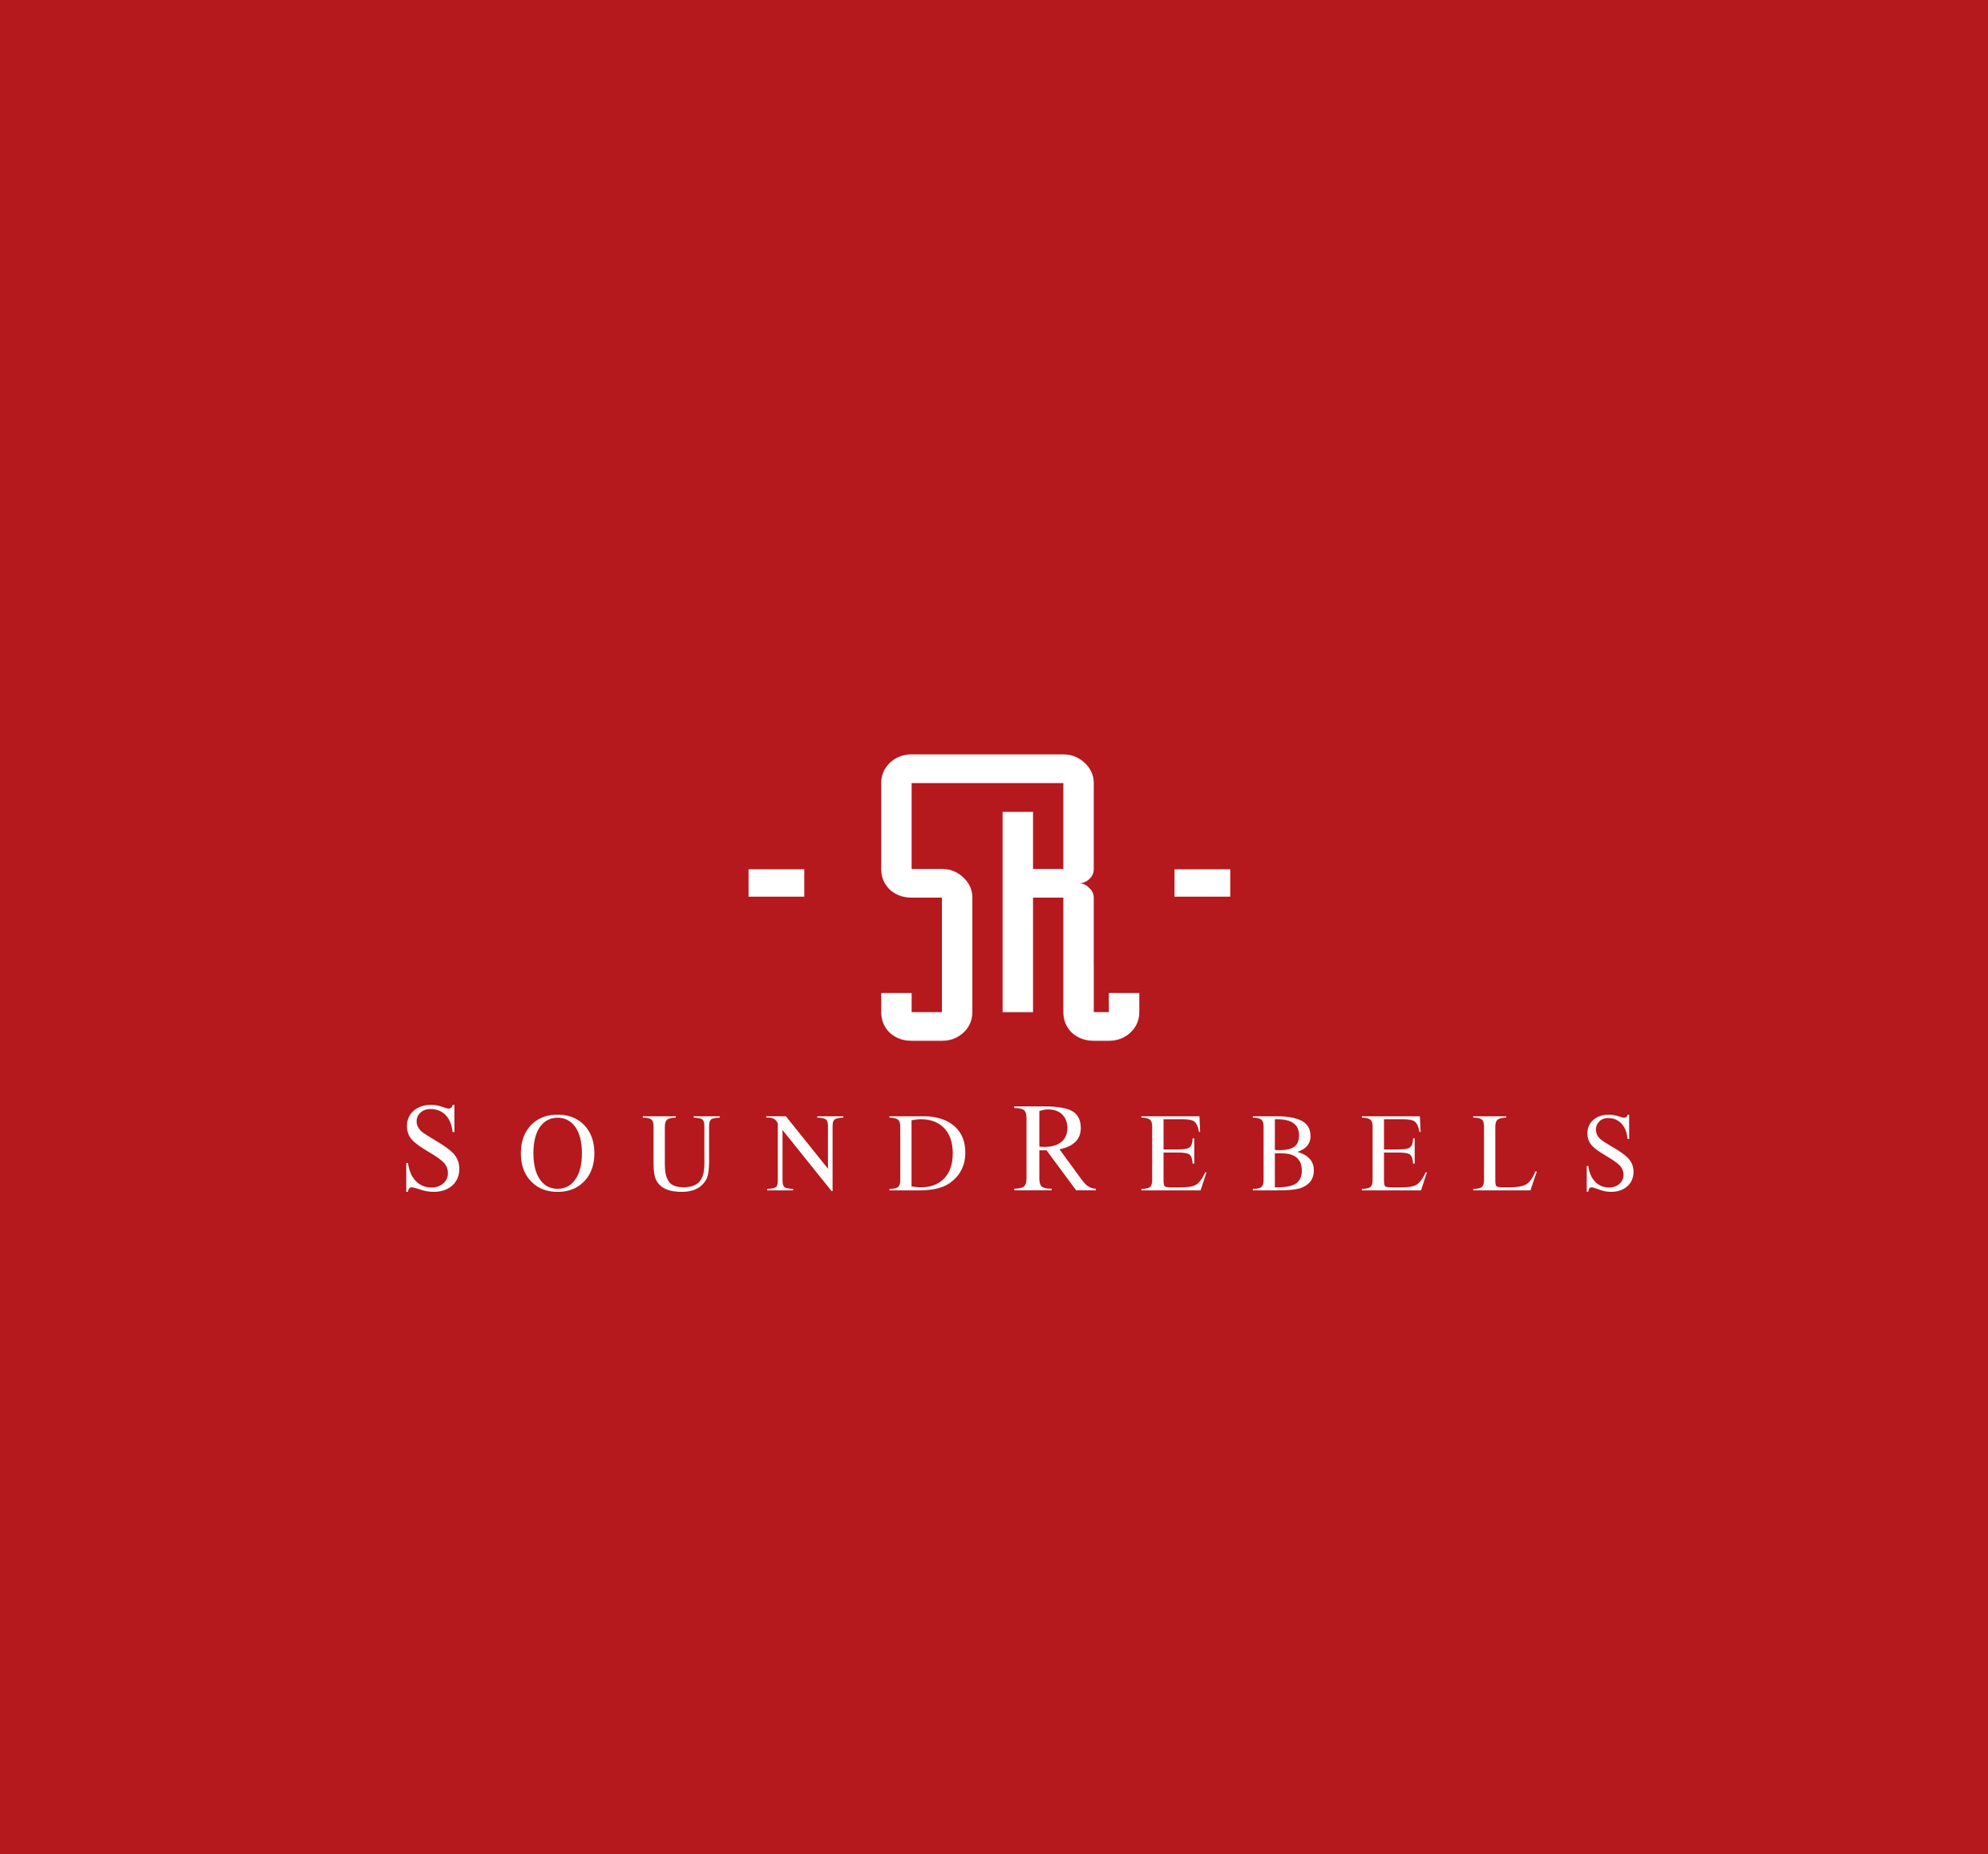 SoundRebels JPG 1